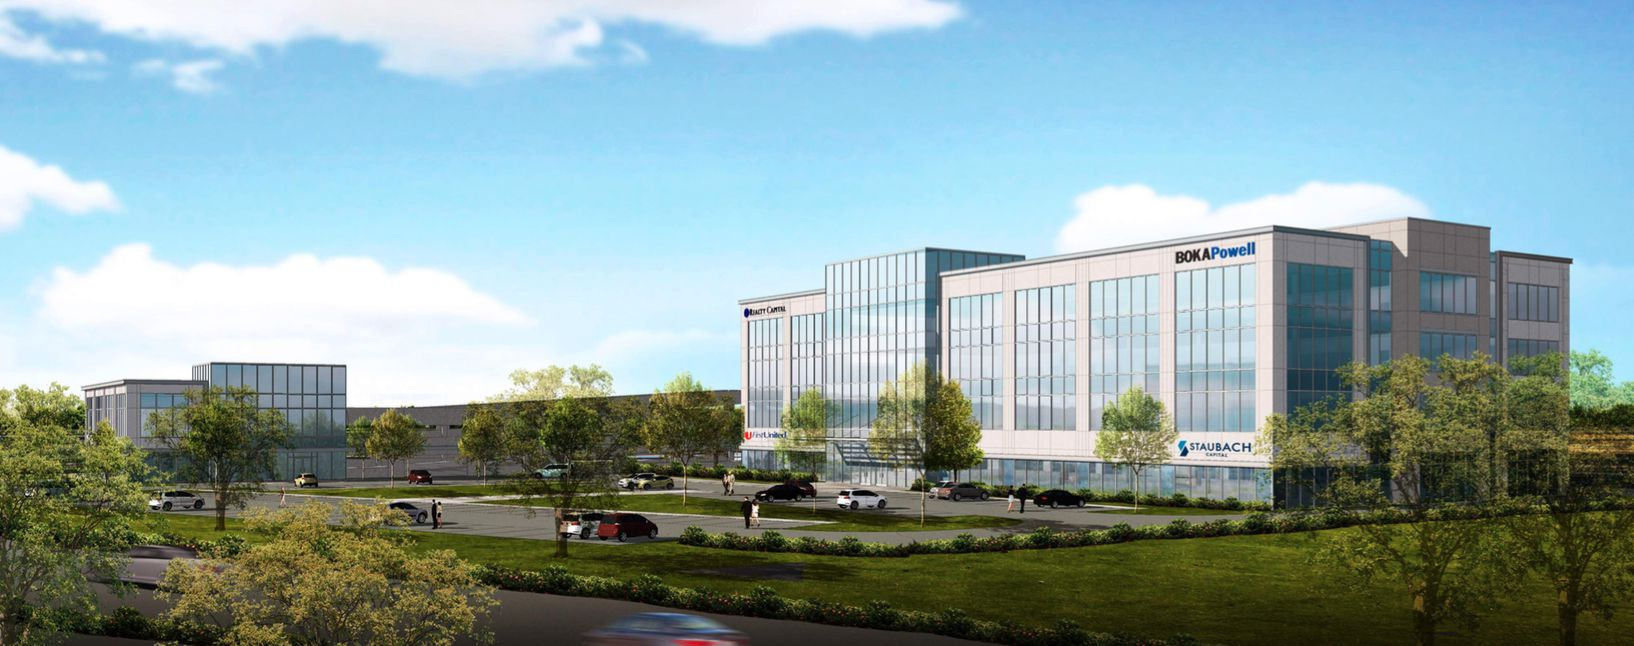 The project near FM2499 and Northwood Drive will be Flower Mound's largest new office development.